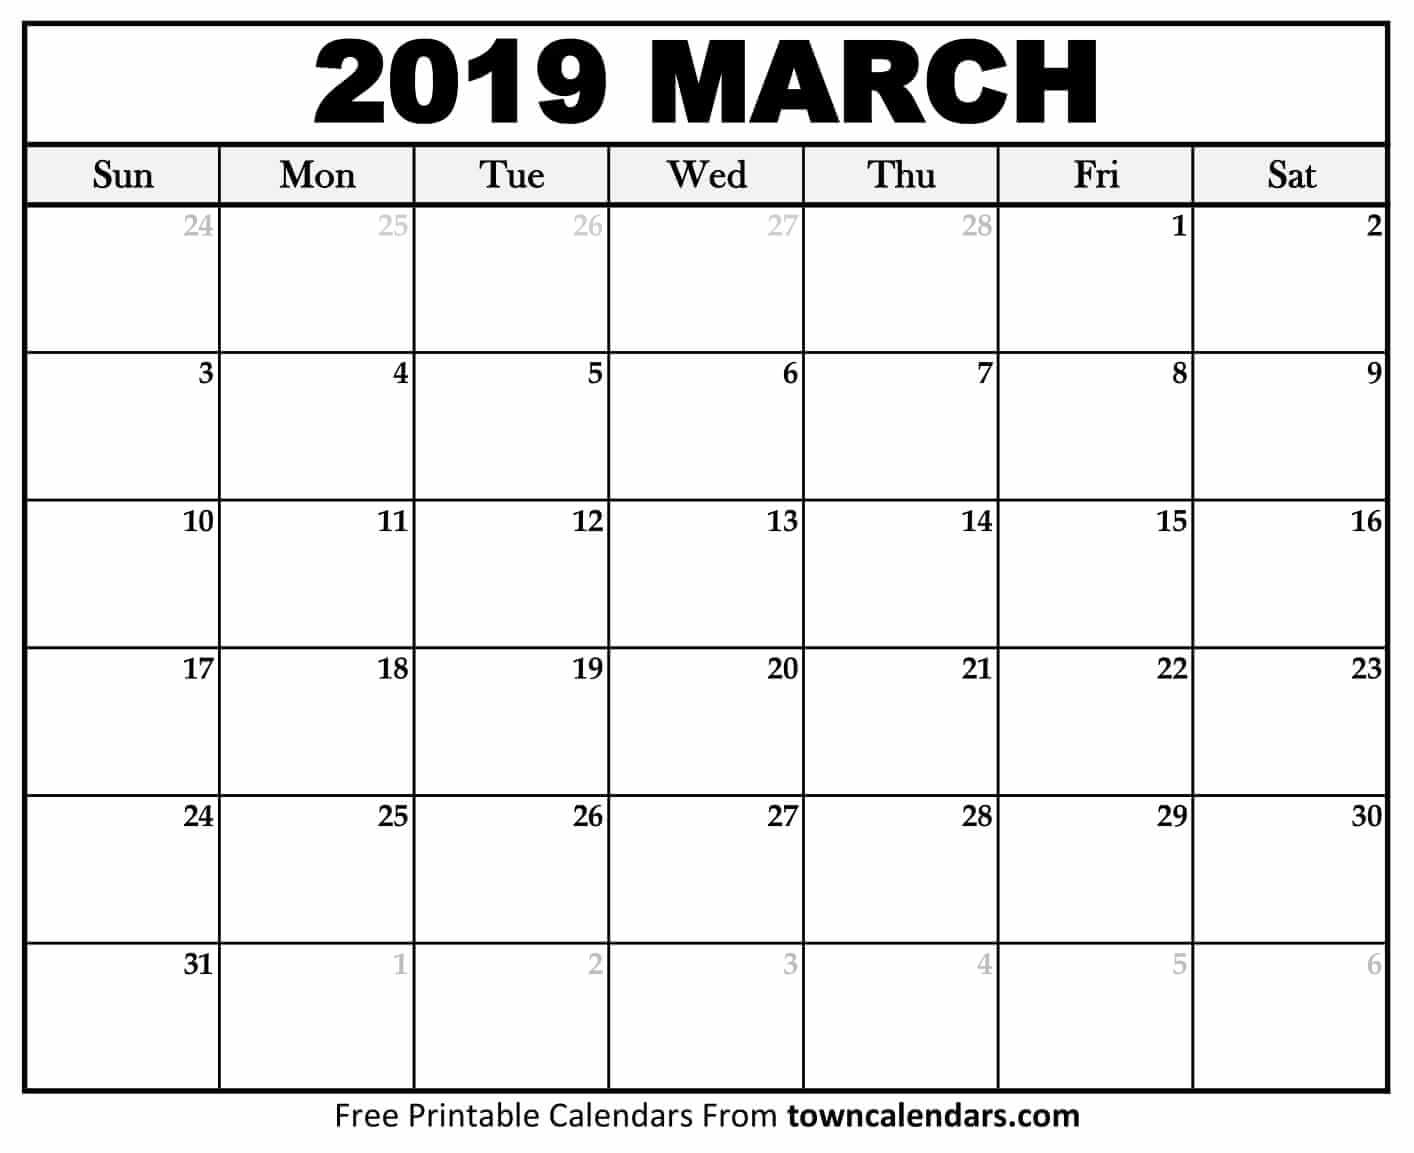 Printable March 2019 Calendar - Towncalendars - Free Printable March Activities